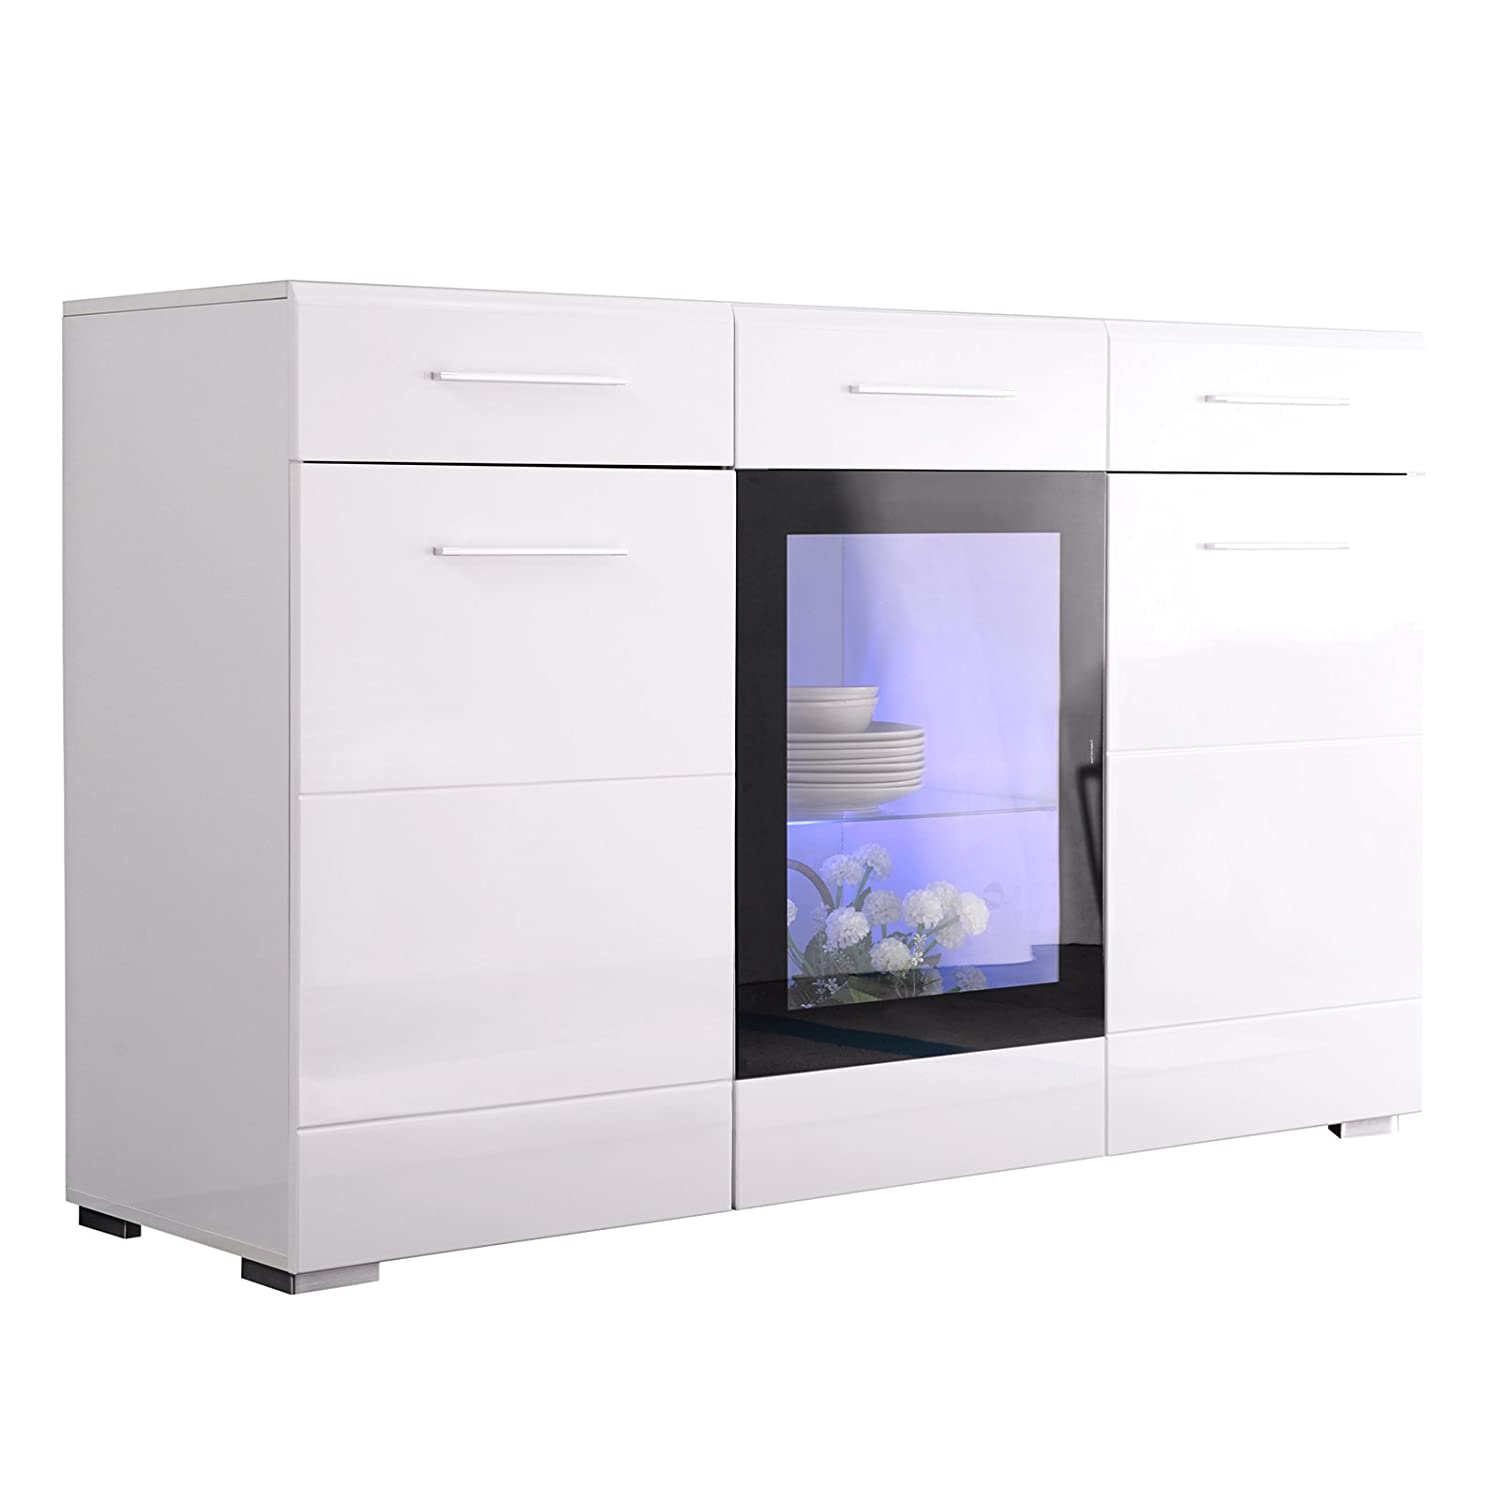 mecor Sideboard Cabinet Buffet w LED Light, Kitchen LED Storage Cabinet Server Console Table, High Gloss w 3 Cabinets 2 Drawers White